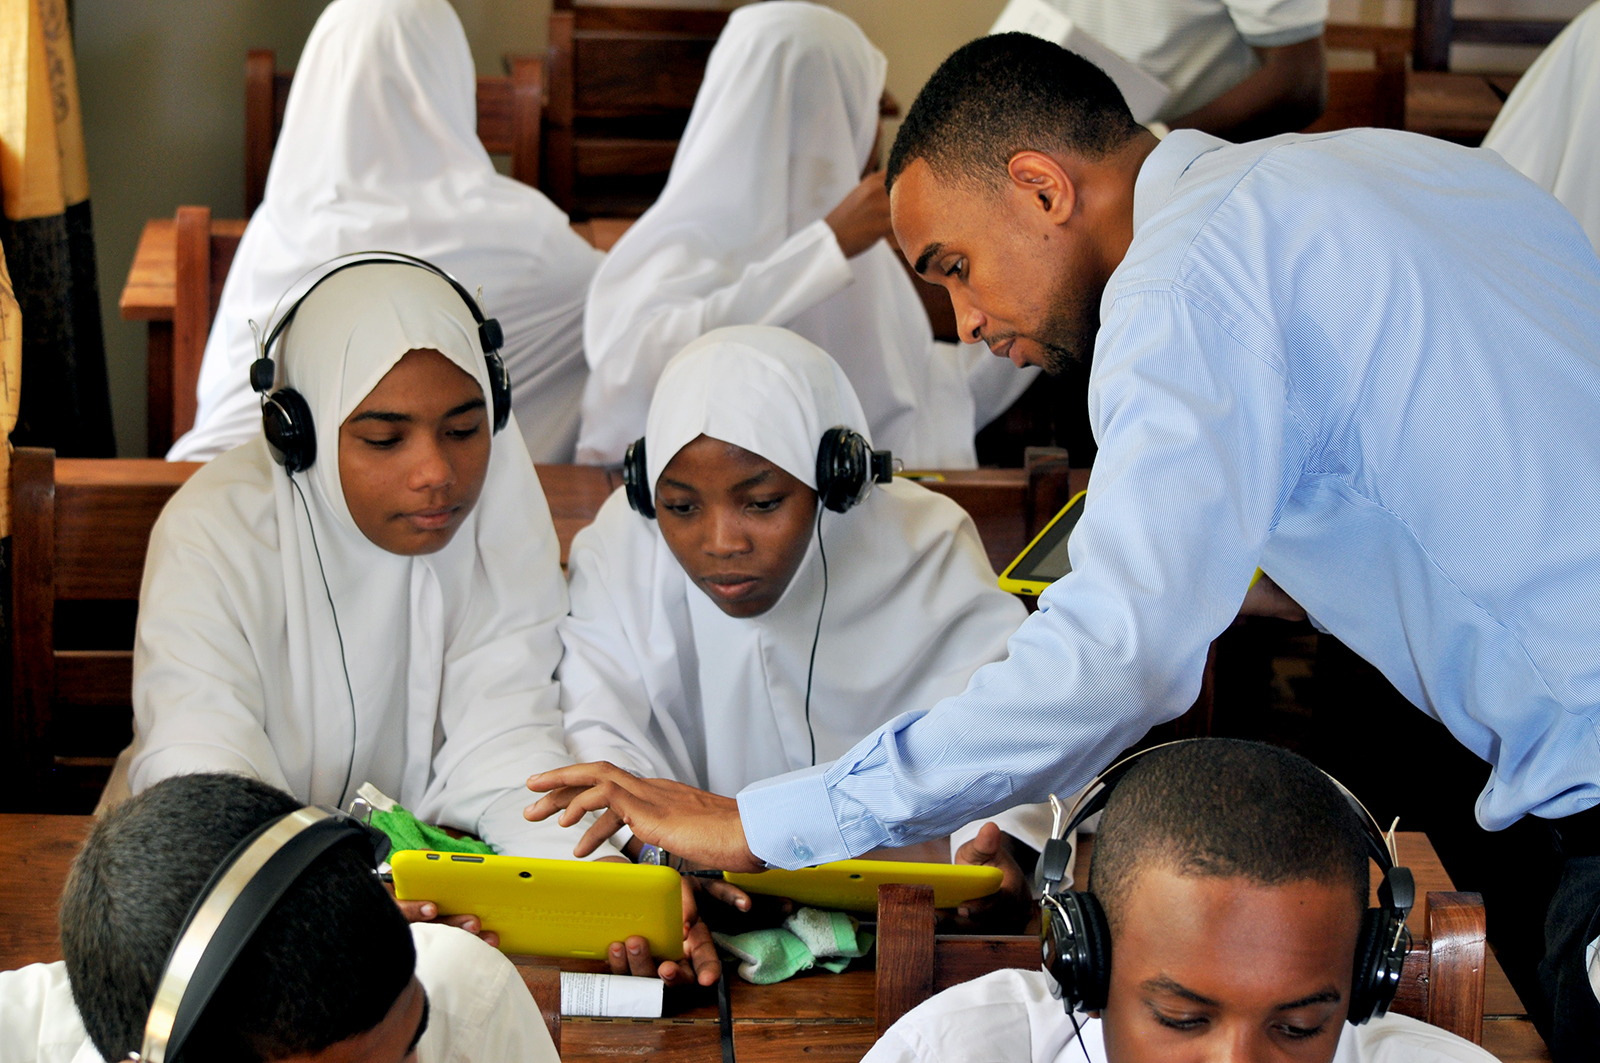 A Zanzibar classroom of students using Opportunity Tablets, provided by Opportunity Education, while a teacher works with two students, tapping the screen of their tablet.